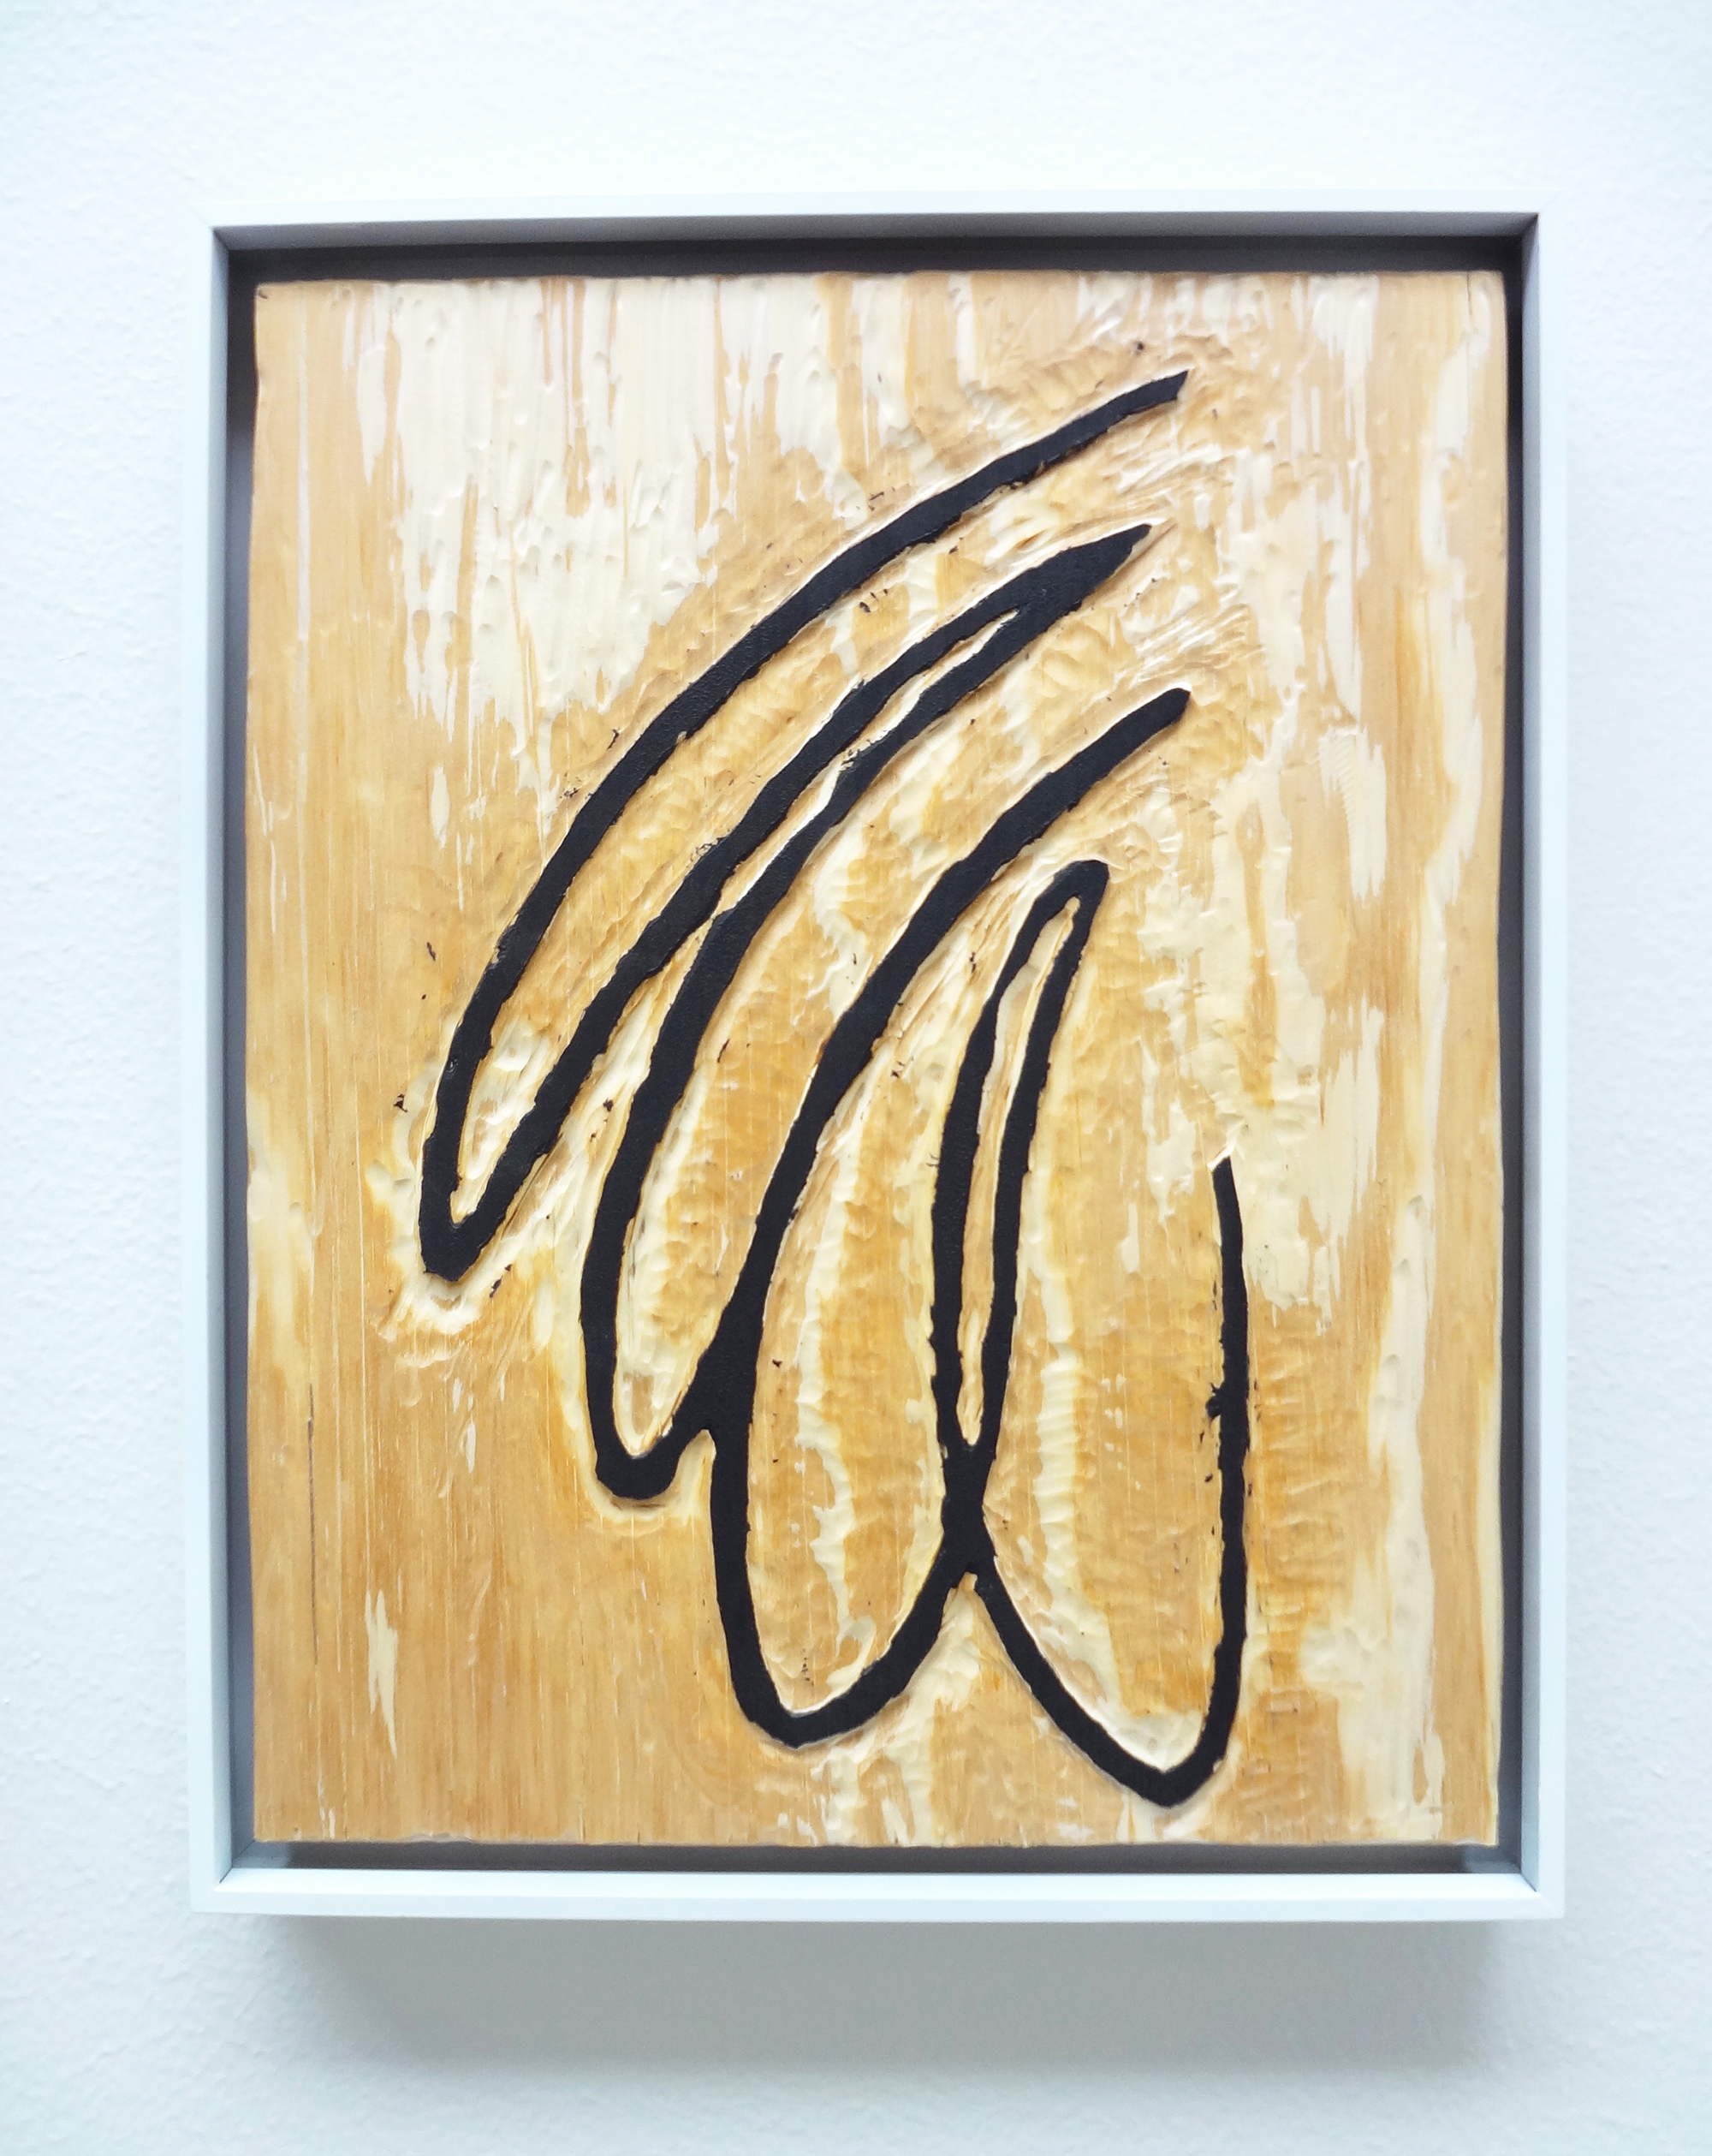 Meghan Gerety  Untitled 10 , 2015 blockprint ink on plywood  15 x 12 in.framed in aluminum